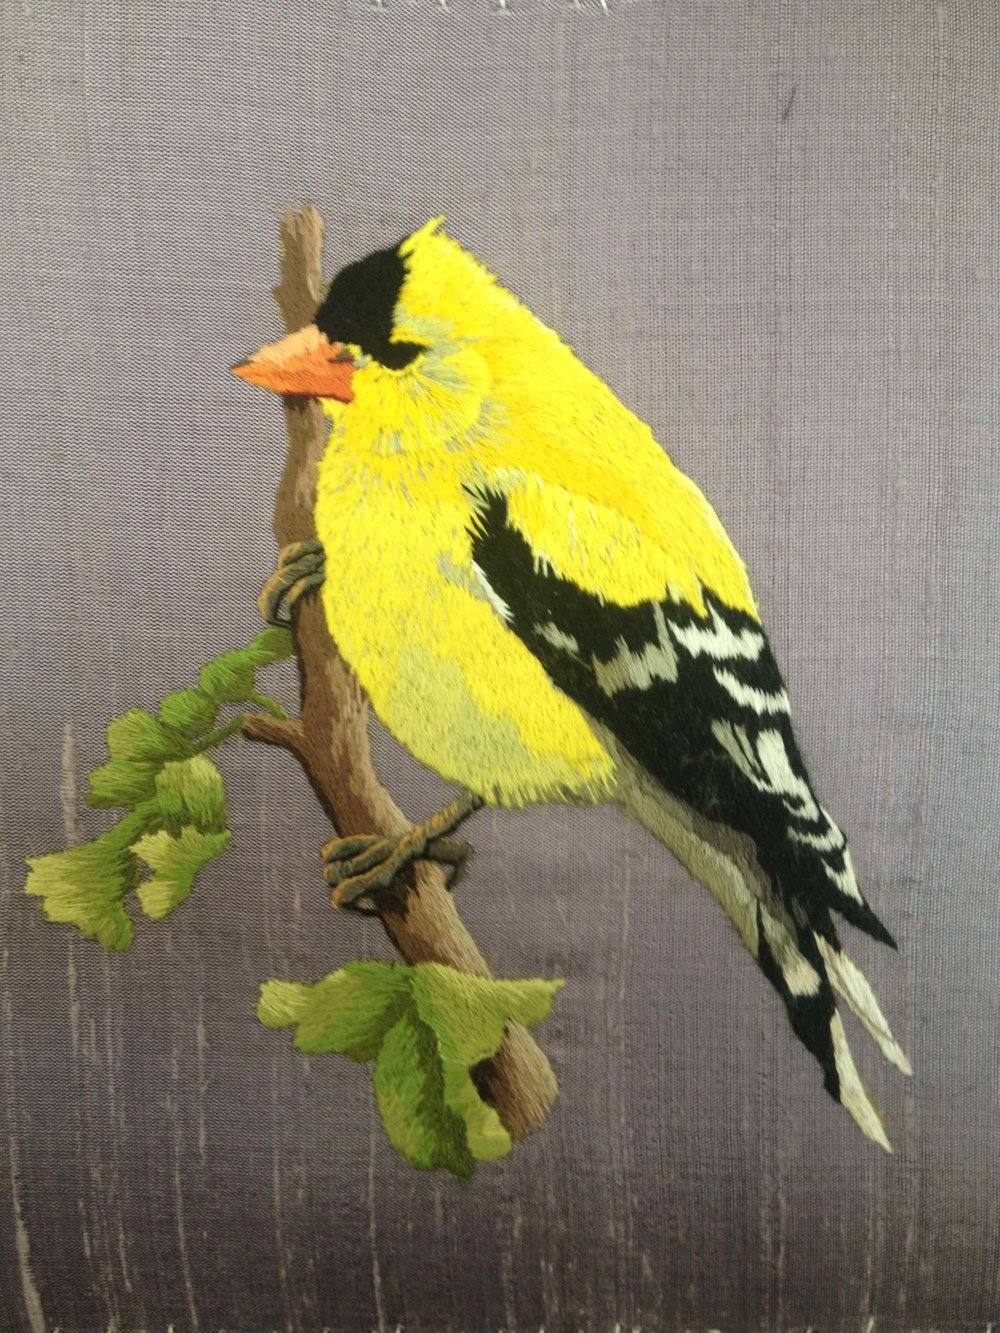 denise's goldfinch final.jpg